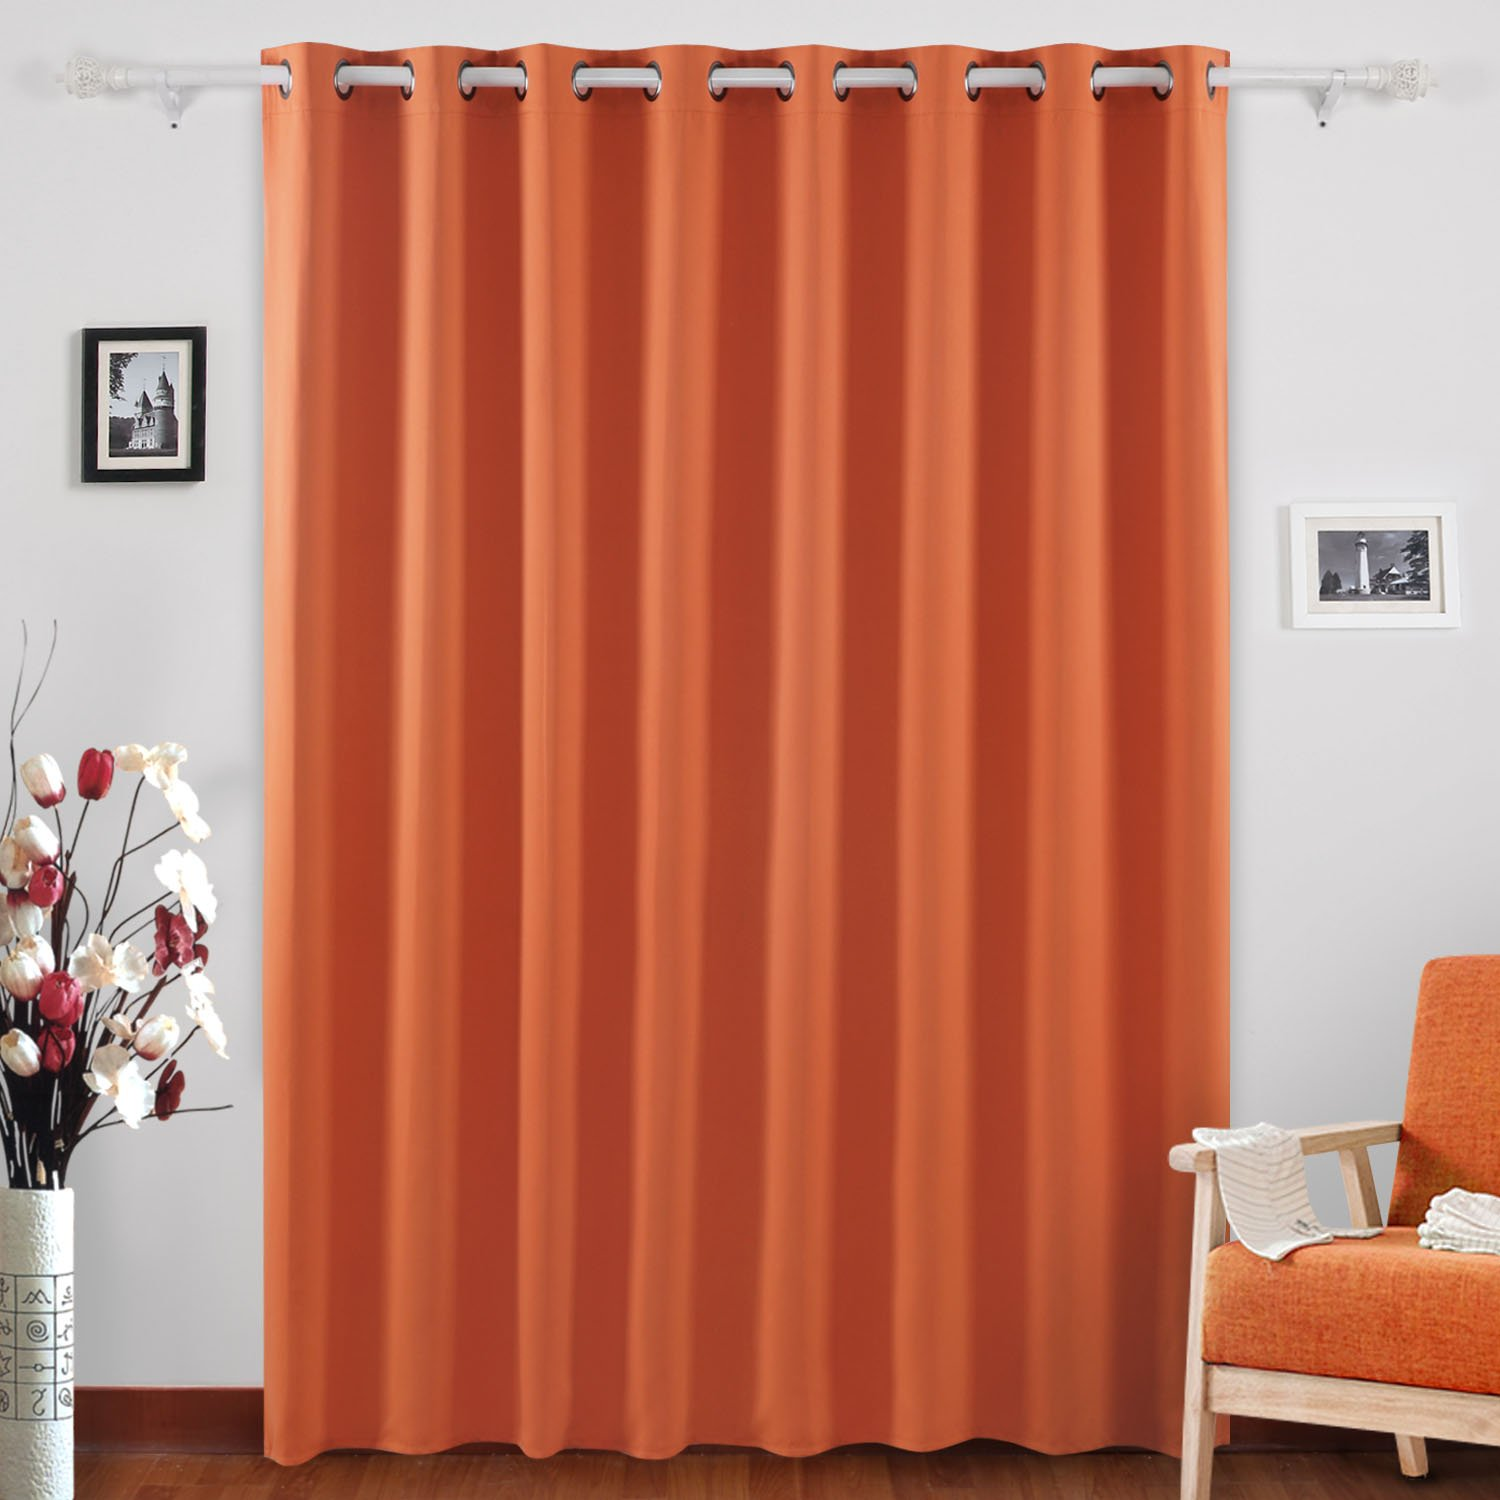 Deconovo Grommet Top Window Curtains Room Darkening Wide Curtains Orange